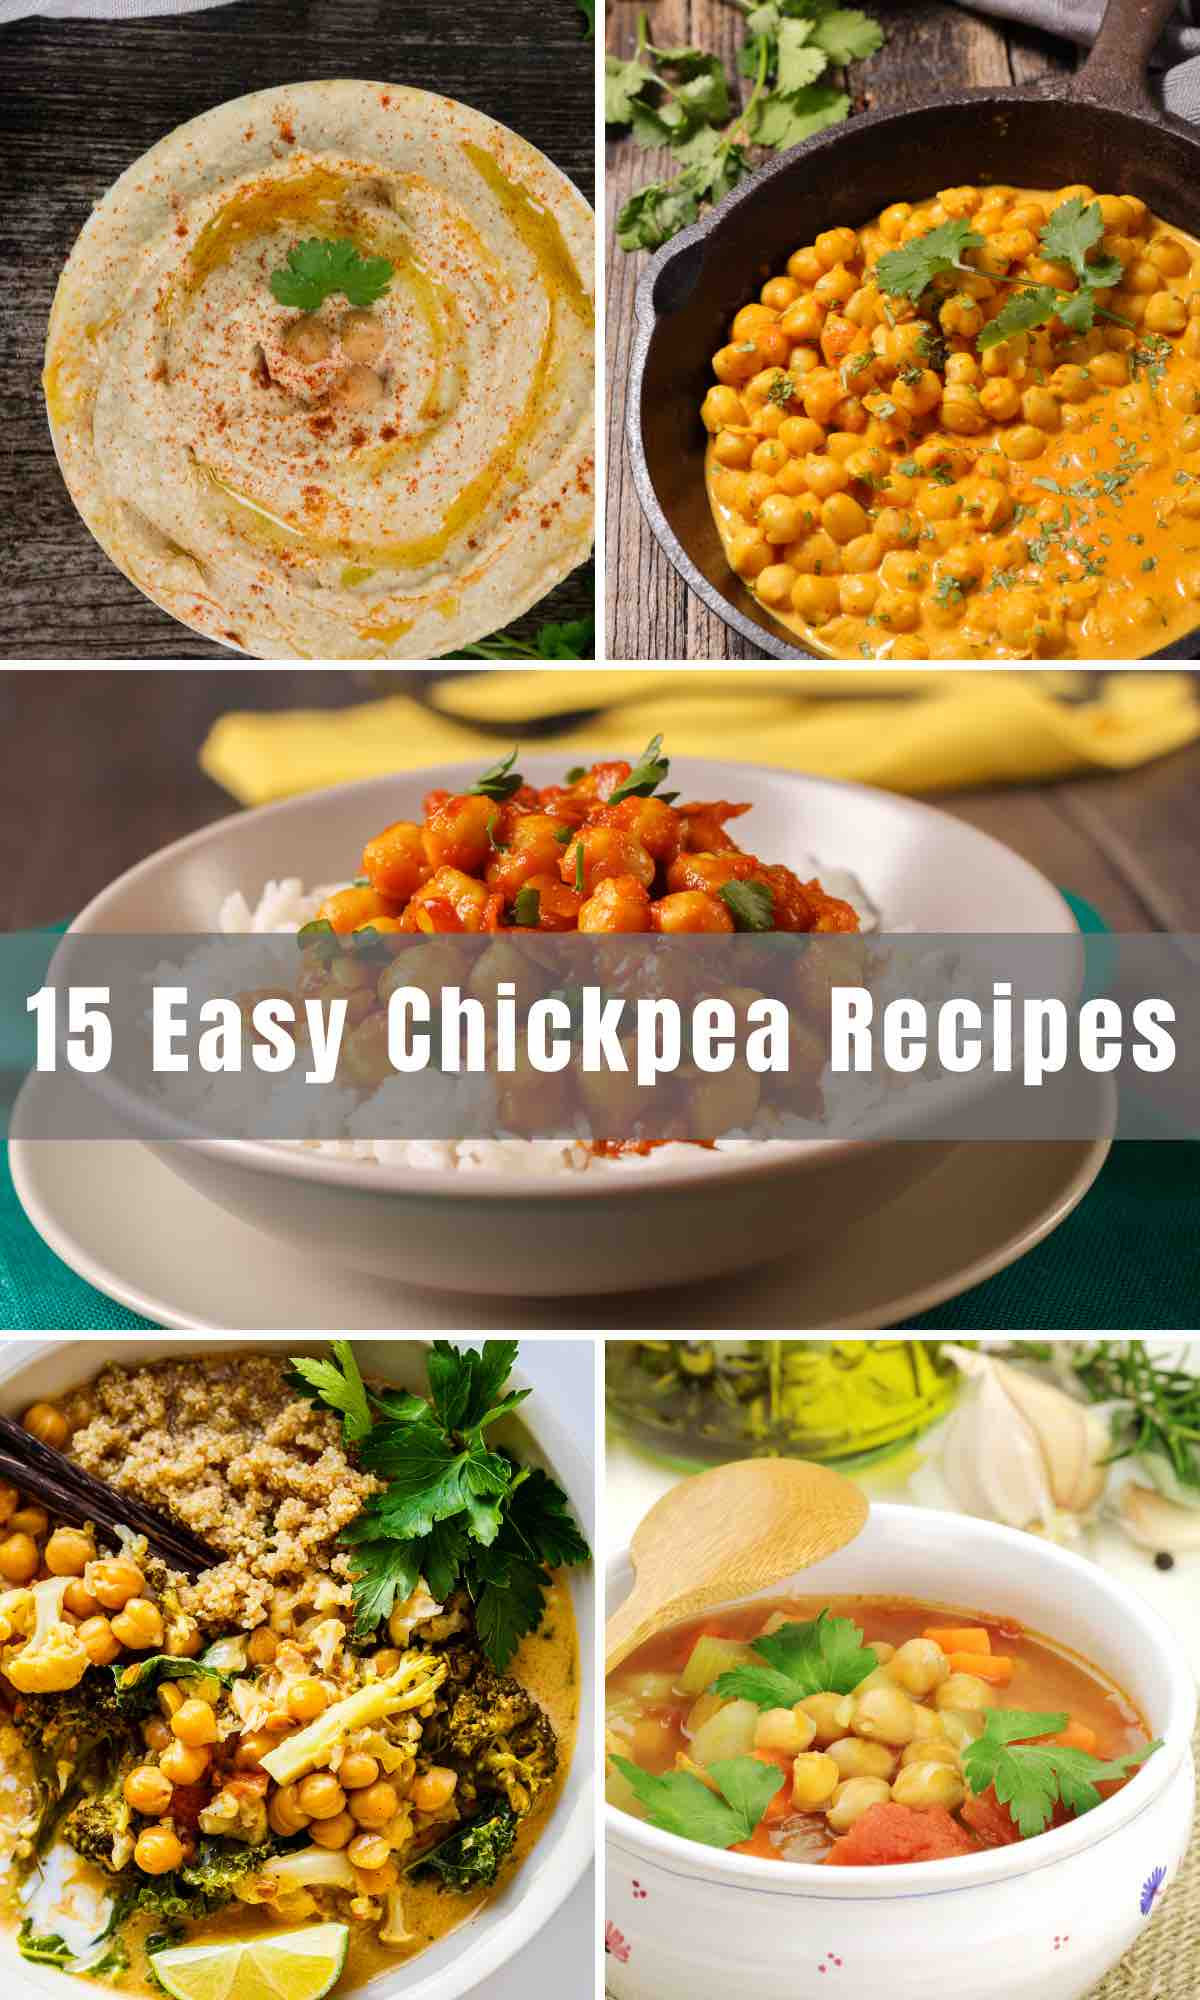 Here are 15 of the best Easy Garbanzo Bean Recipes for your to try! We're about to take the nutritious chickpeas to a whole new level! From salads to soups, hummus, and burgers- garbanzo beans are a perfect addition to many dishes.